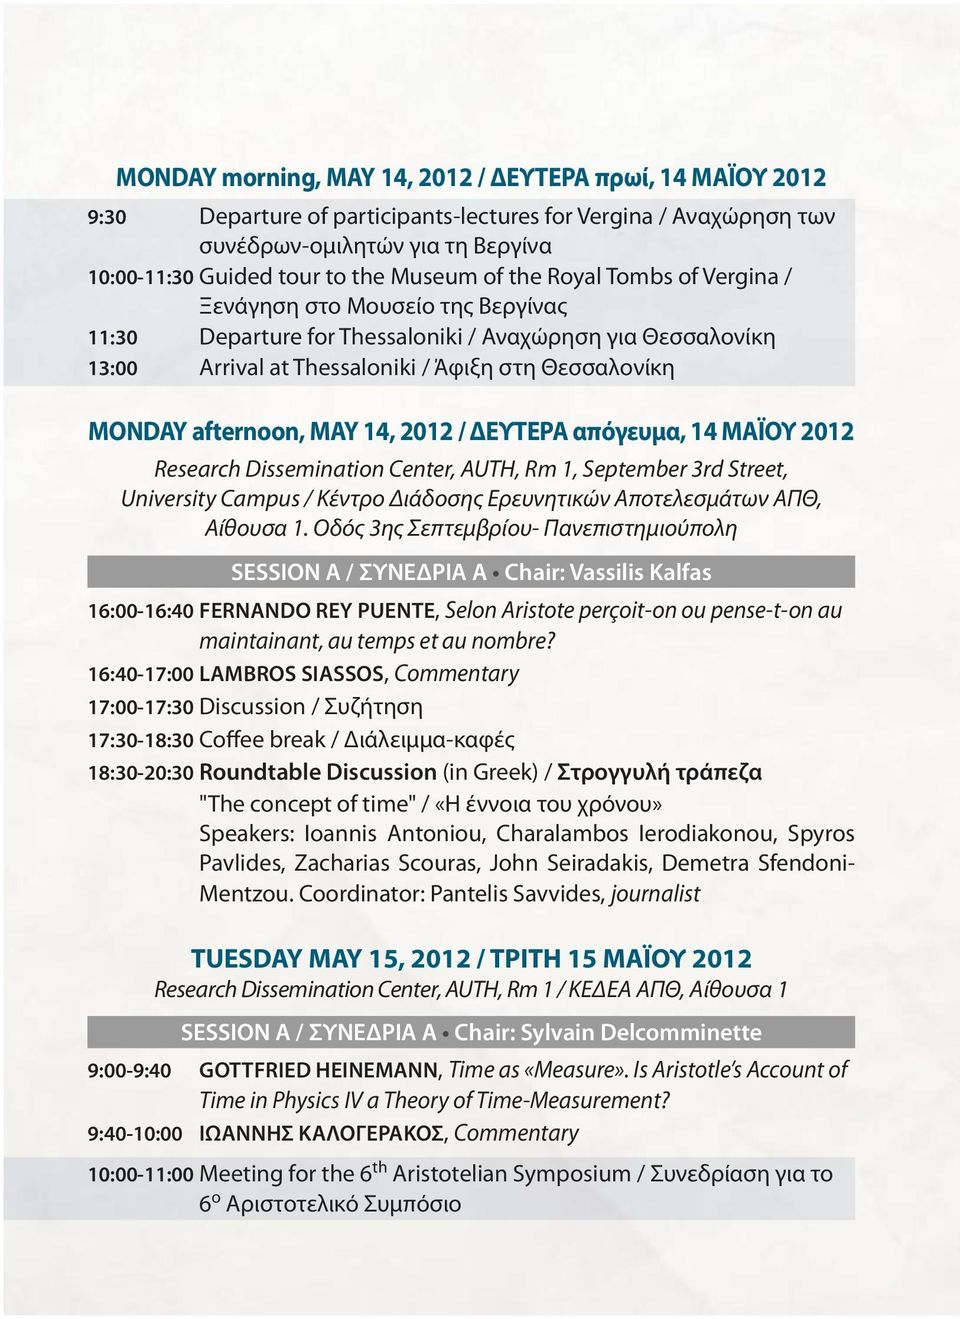 MAY 14, 2012 / ΔΕΥΤΕΡΑ απόγευμα, 14 ΜΑΪΟΥ 2012 Research Dissemination Center, AUTH, Rm 1, September 3rd Street, University Campus / Κέντρο Διάδοσης Ερευνητικών Αποτελεσμάτων ΑΠΘ, Αίθουσα 1.